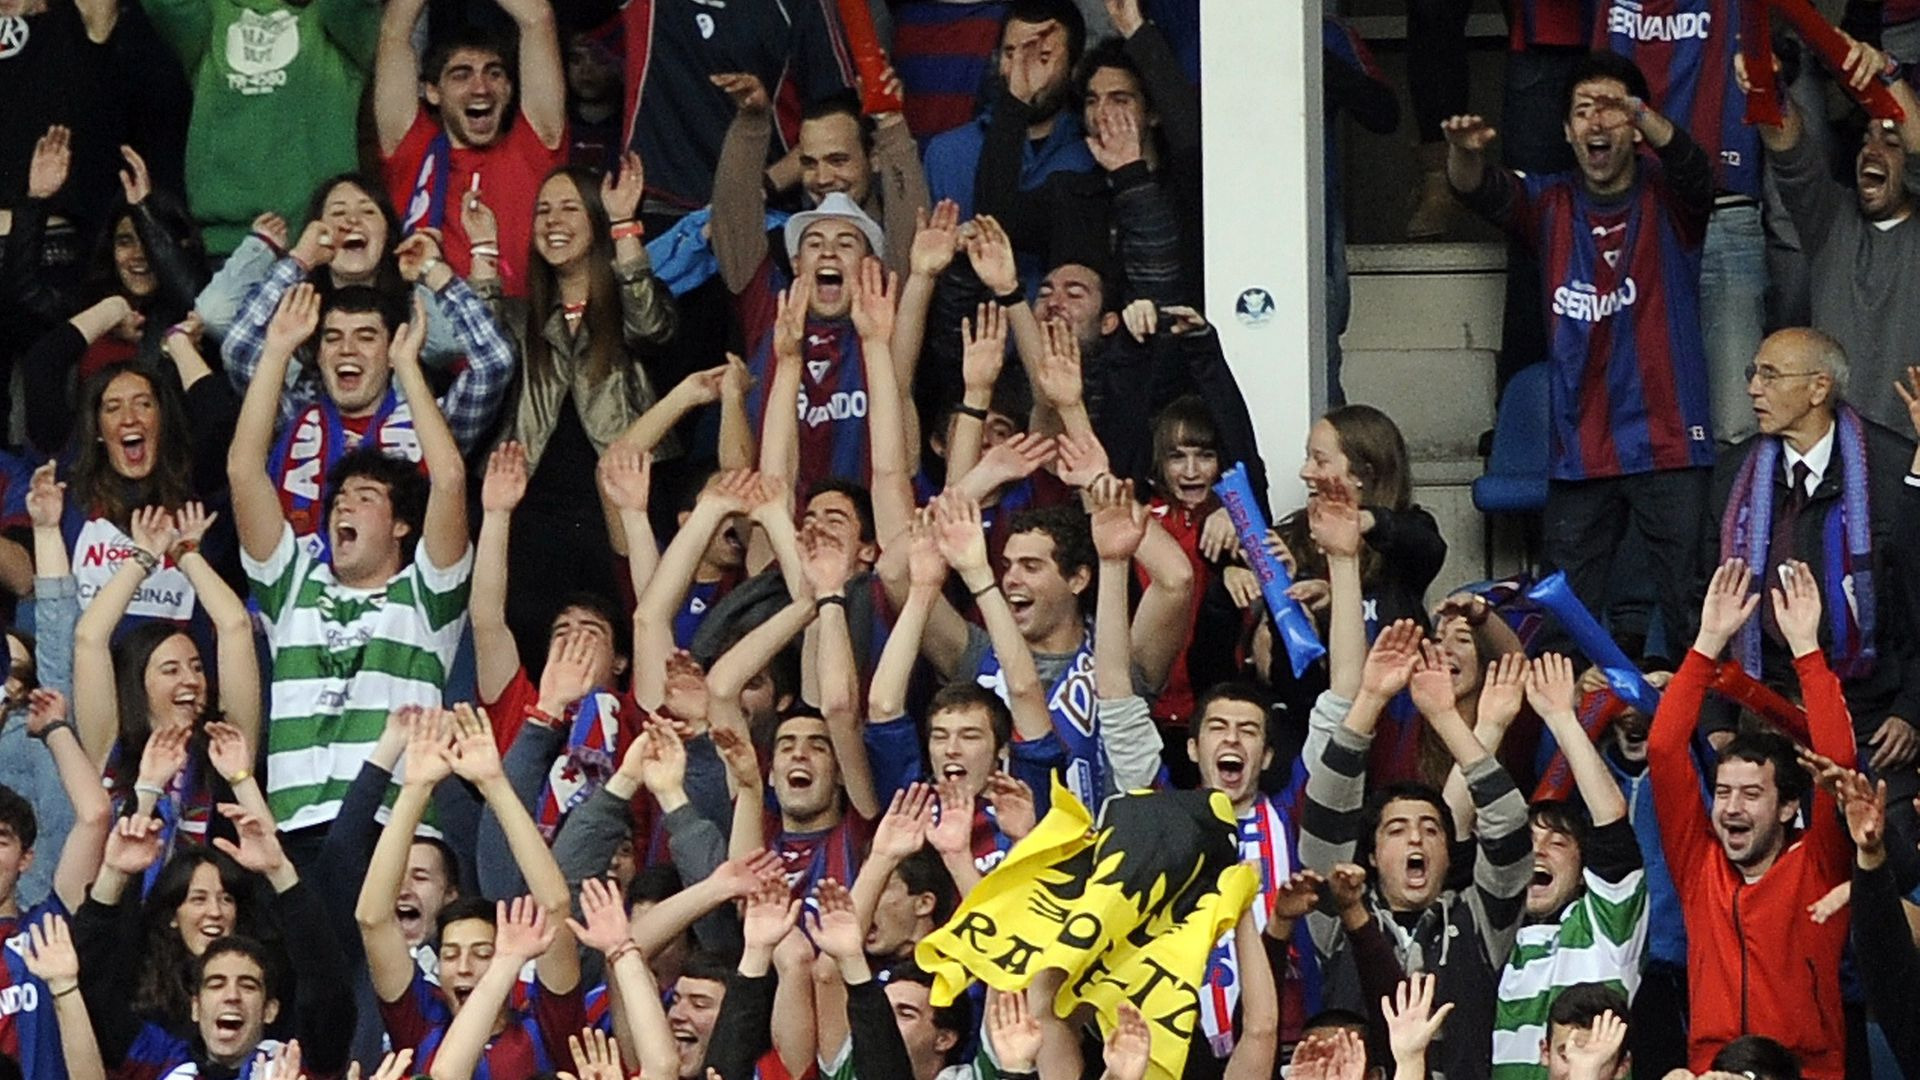 Basque flags and Celtic shirts can be seen as Eibar's fans celebrate during the team's promotion campaign in 2014 - Credit: AFP via Getty Images